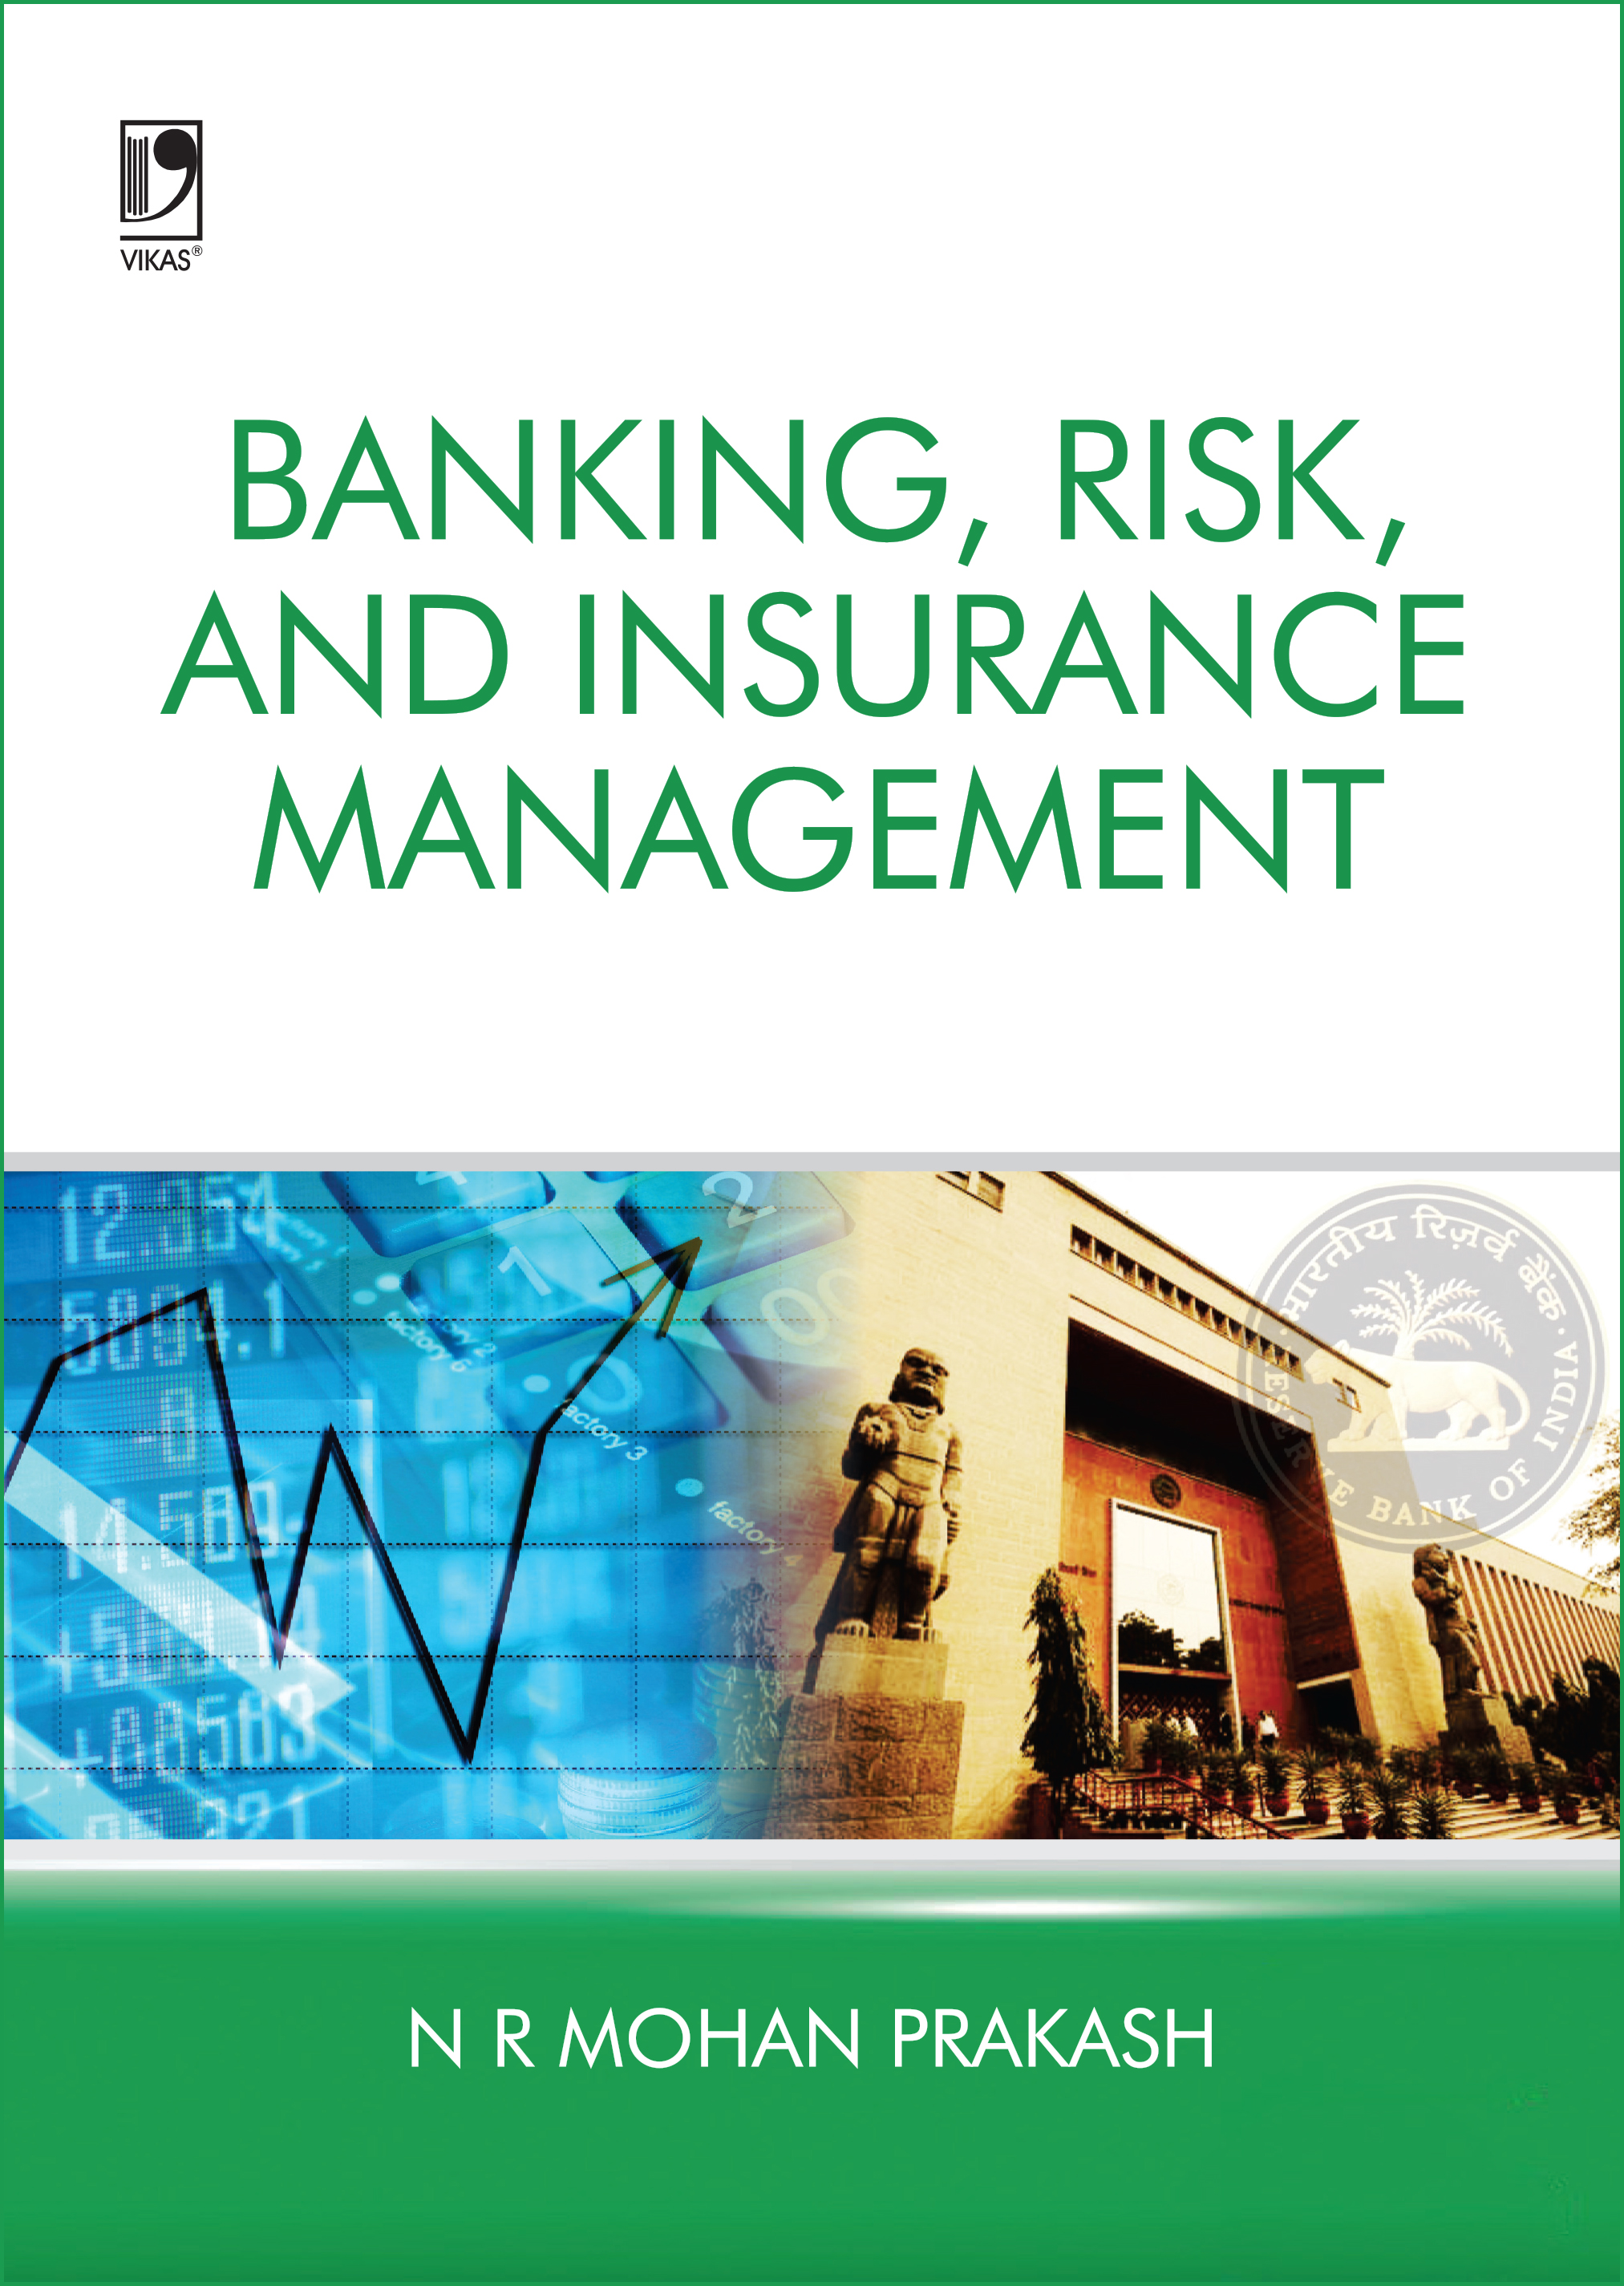 BANKING, RISK AND INSURANCE MANAGEMENT